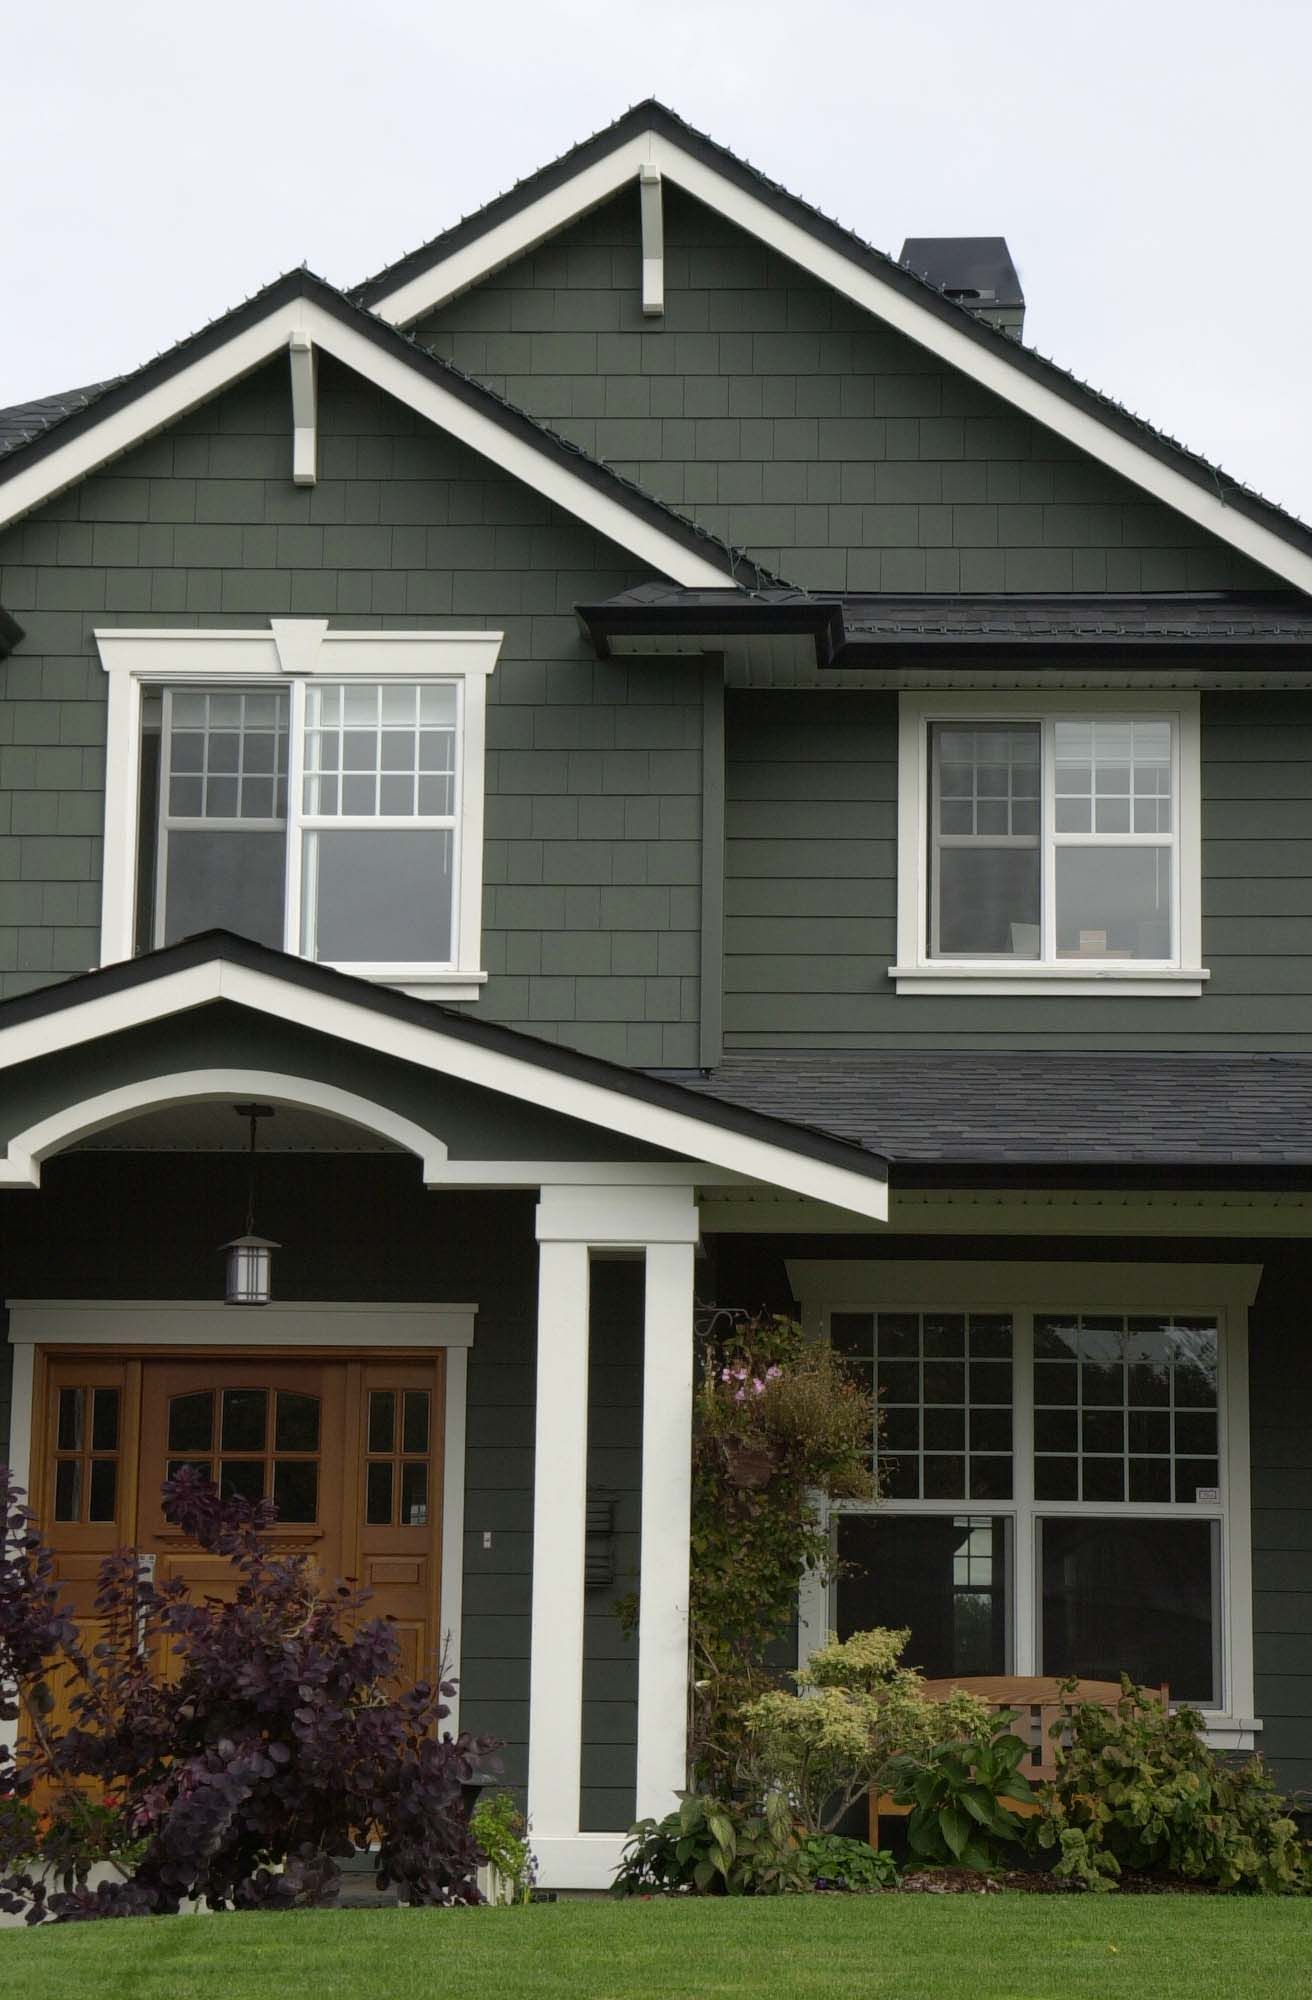 Cedar Pine A Strong Deep Green With Crisp White And Black Accents Creates A Highly Drama Green Exterior House Colors House Paint Exterior Green House Color